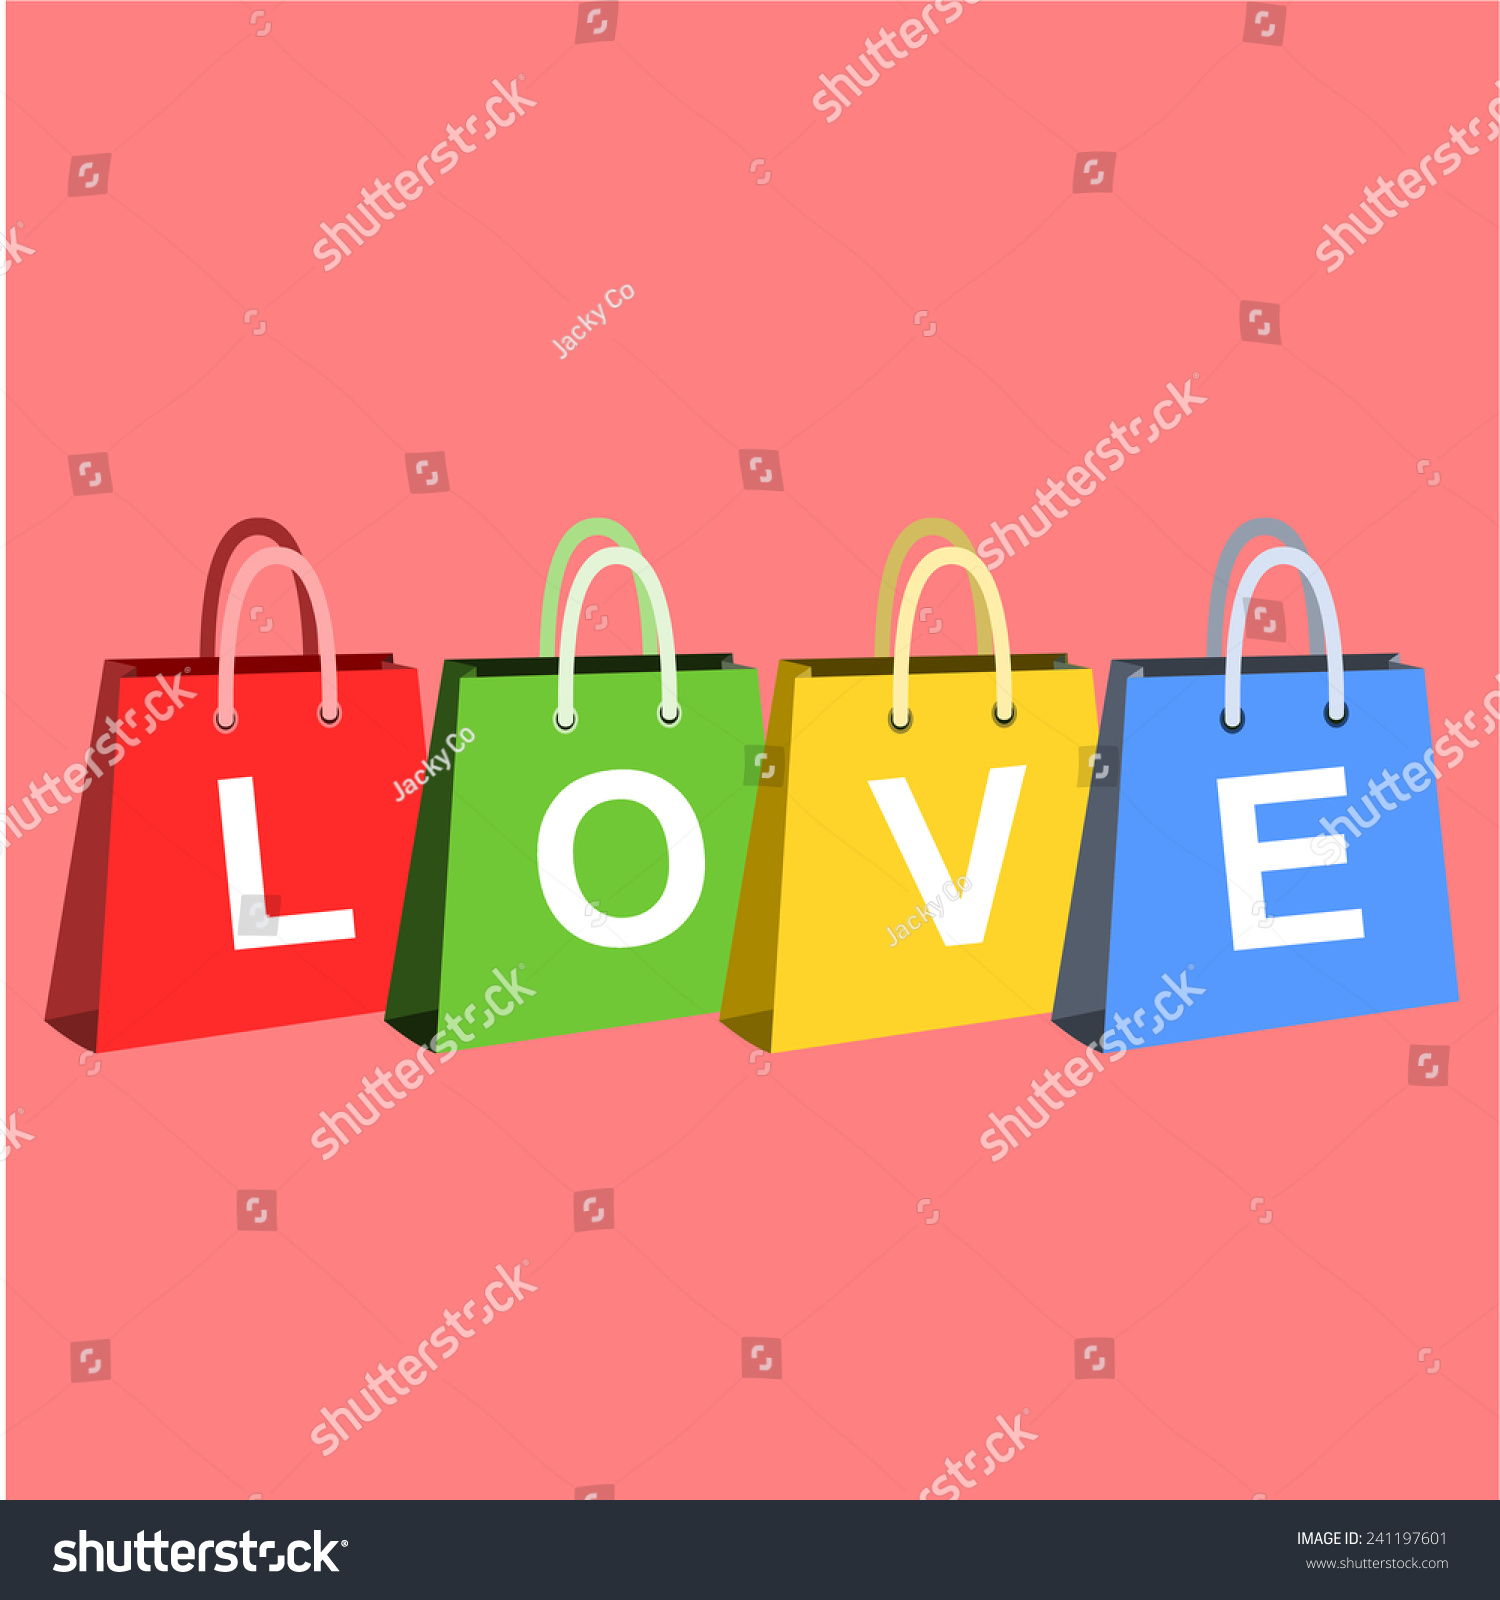 Valentines day sales shopping posters shopping stock vector valentines day sales or shopping posters with shopping bags and different symbols of love buycottarizona Images